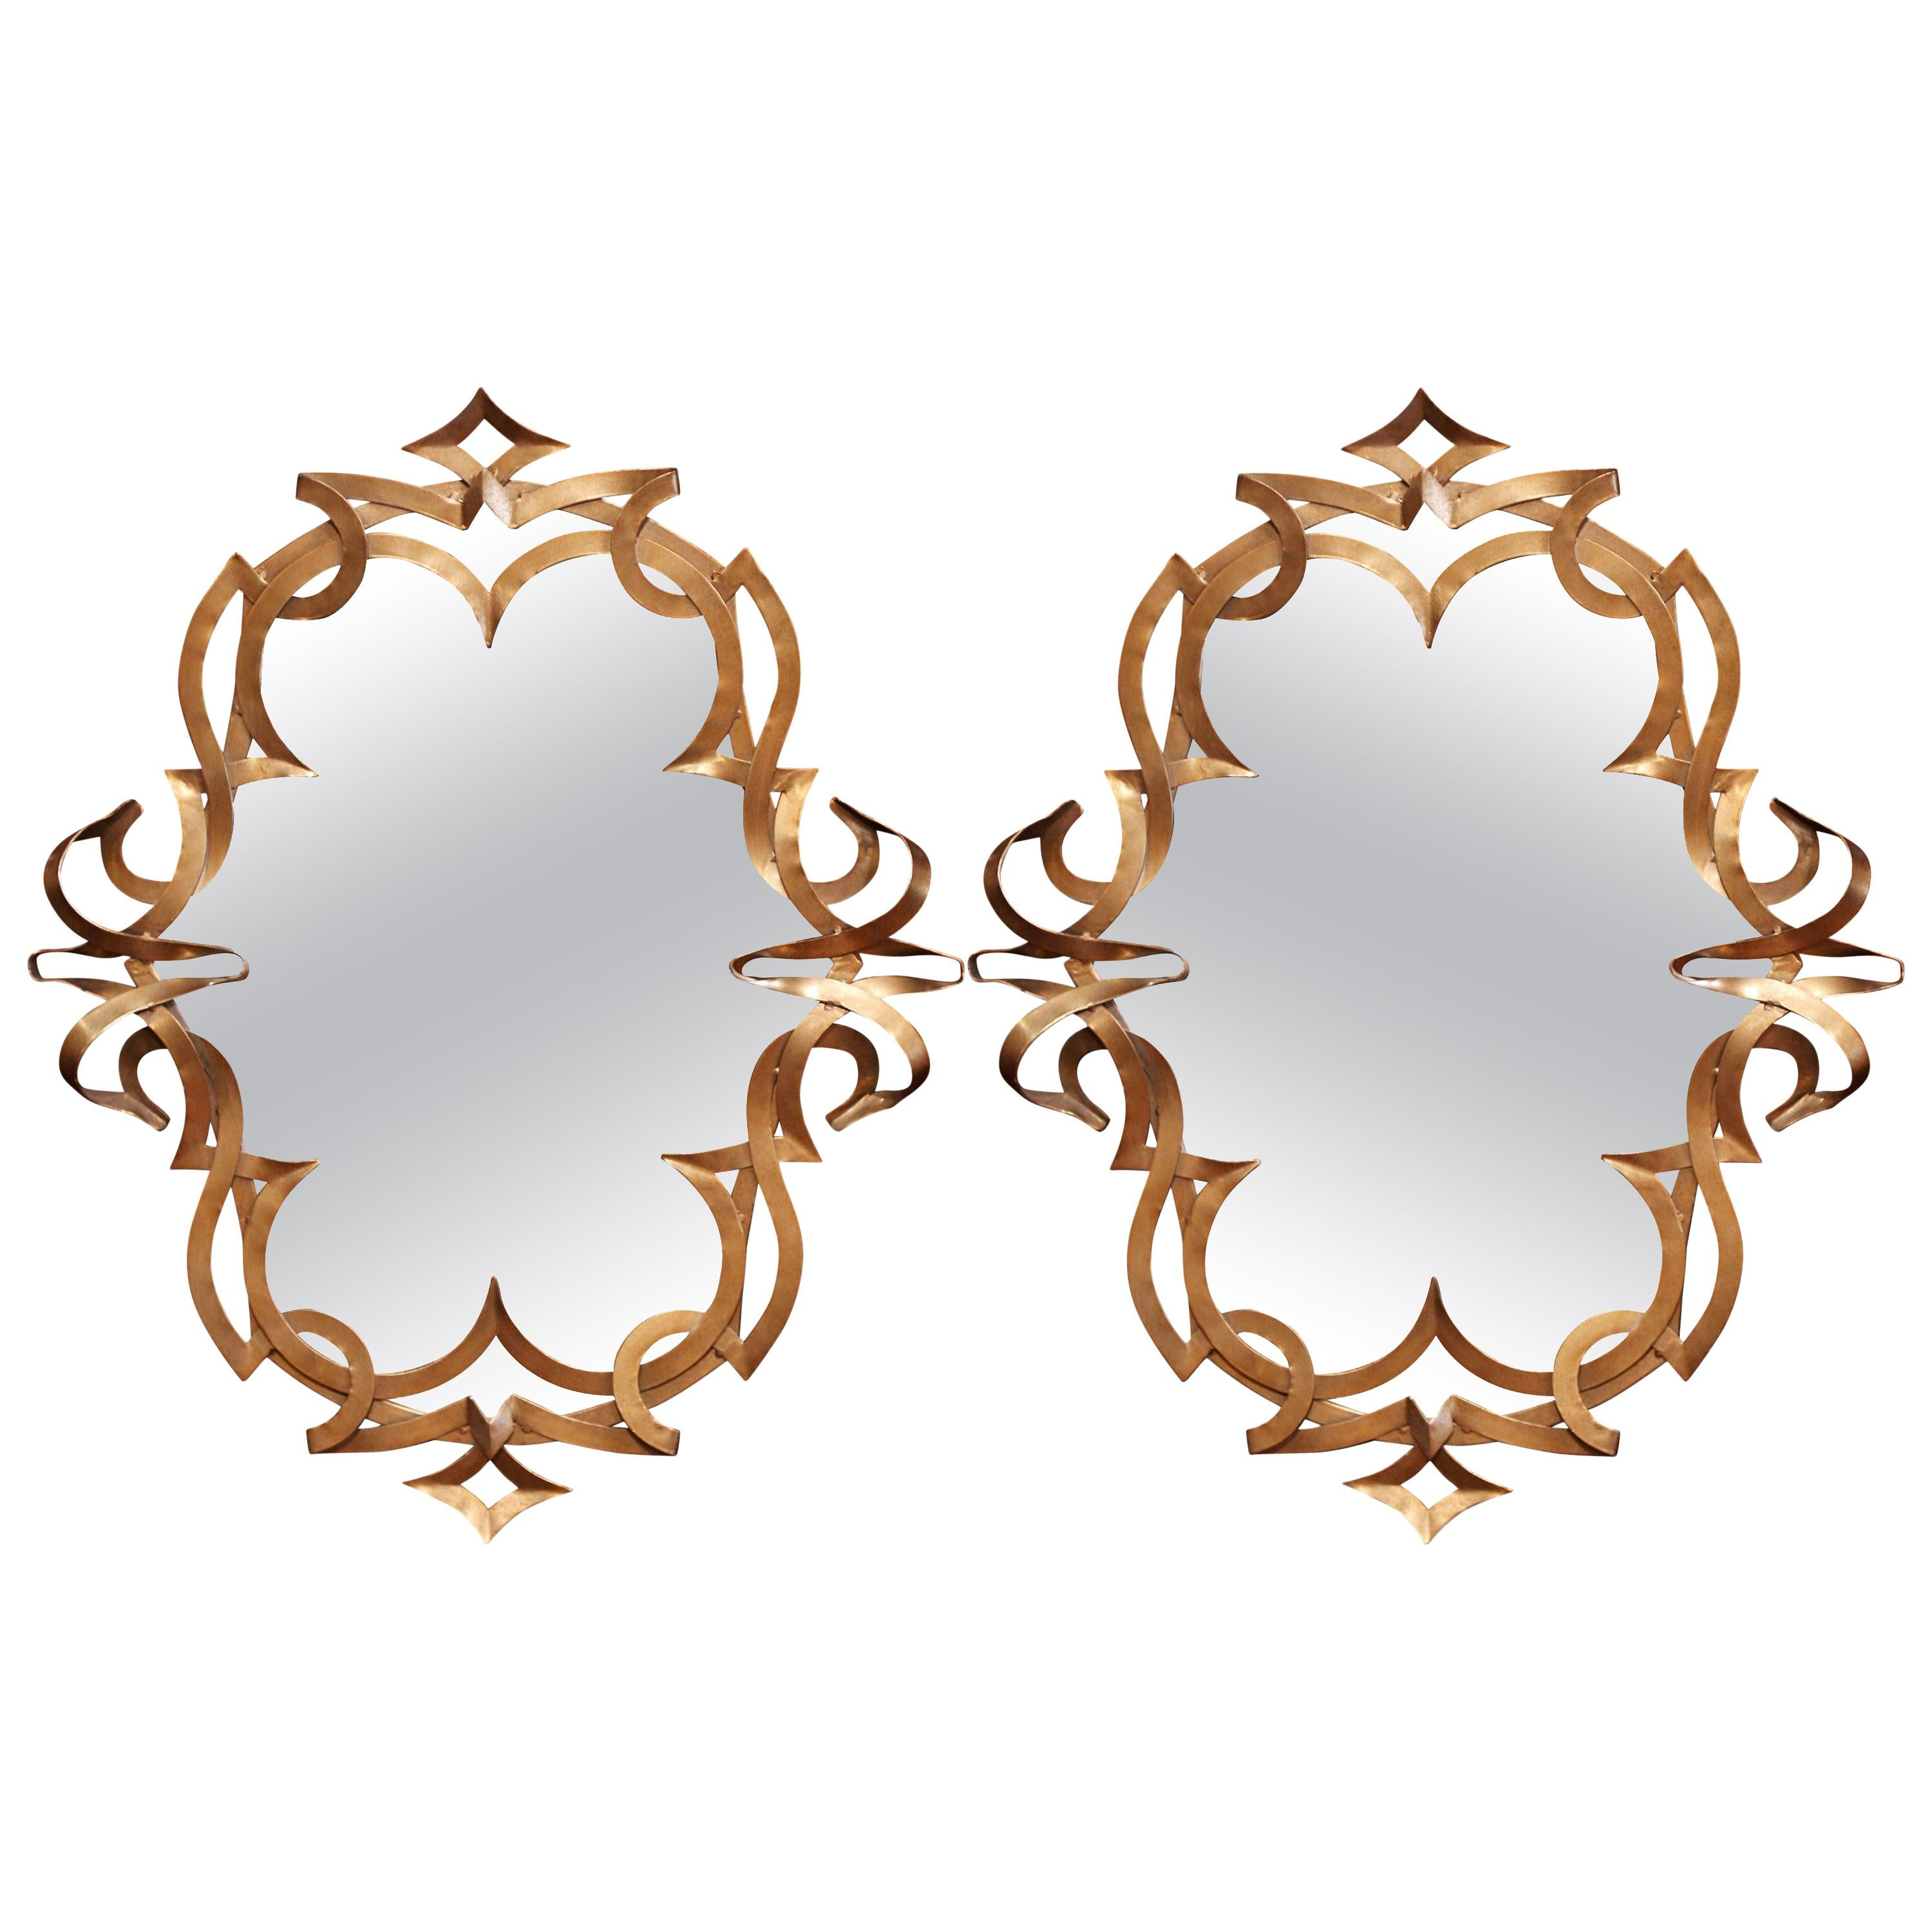 Pair of Vintage French Art Deco Gilt Painted Metal Wall Mirrors